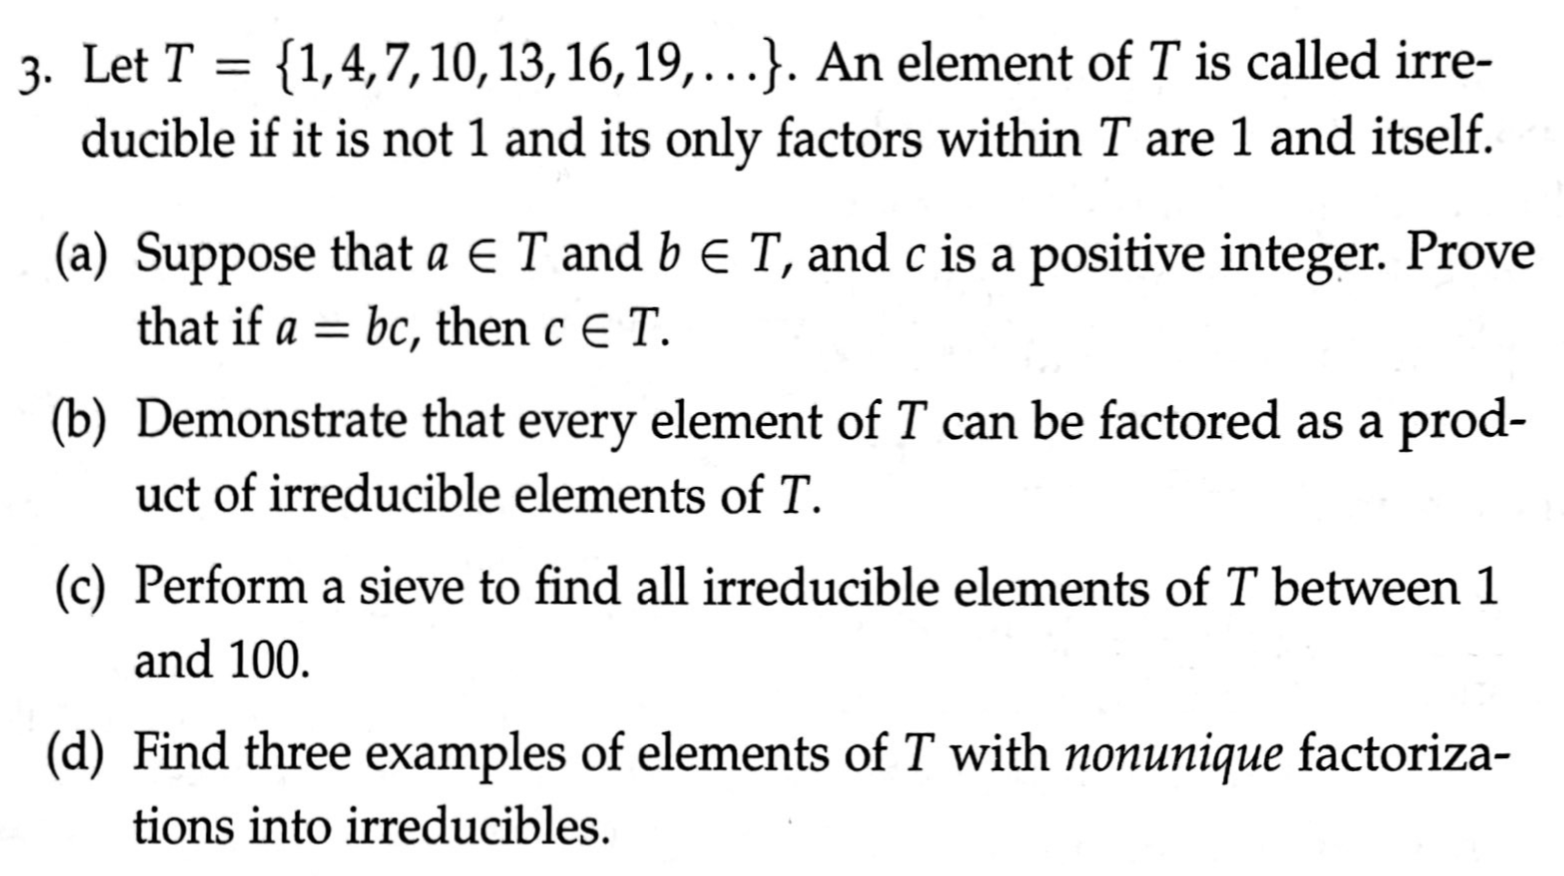 {1,4,7,10, 13, 16, 19,...}. An element of T is called irre- ducible if it is not 1 and its only factors within T are 1 and itself. 3. Let T = (a) Suppose that a E T and b e T, and c is a positive integer. Prove that if a = bc, then c E T. (b) Demonstrate that every element of T can be factored as a prod- uct of irreducible elements of T. (c) Perform a sieve to find all irreducible elements of T between 1 and 100. (d) Find three examples of elements of T with nonunique factoriza- tions into irreducibles.